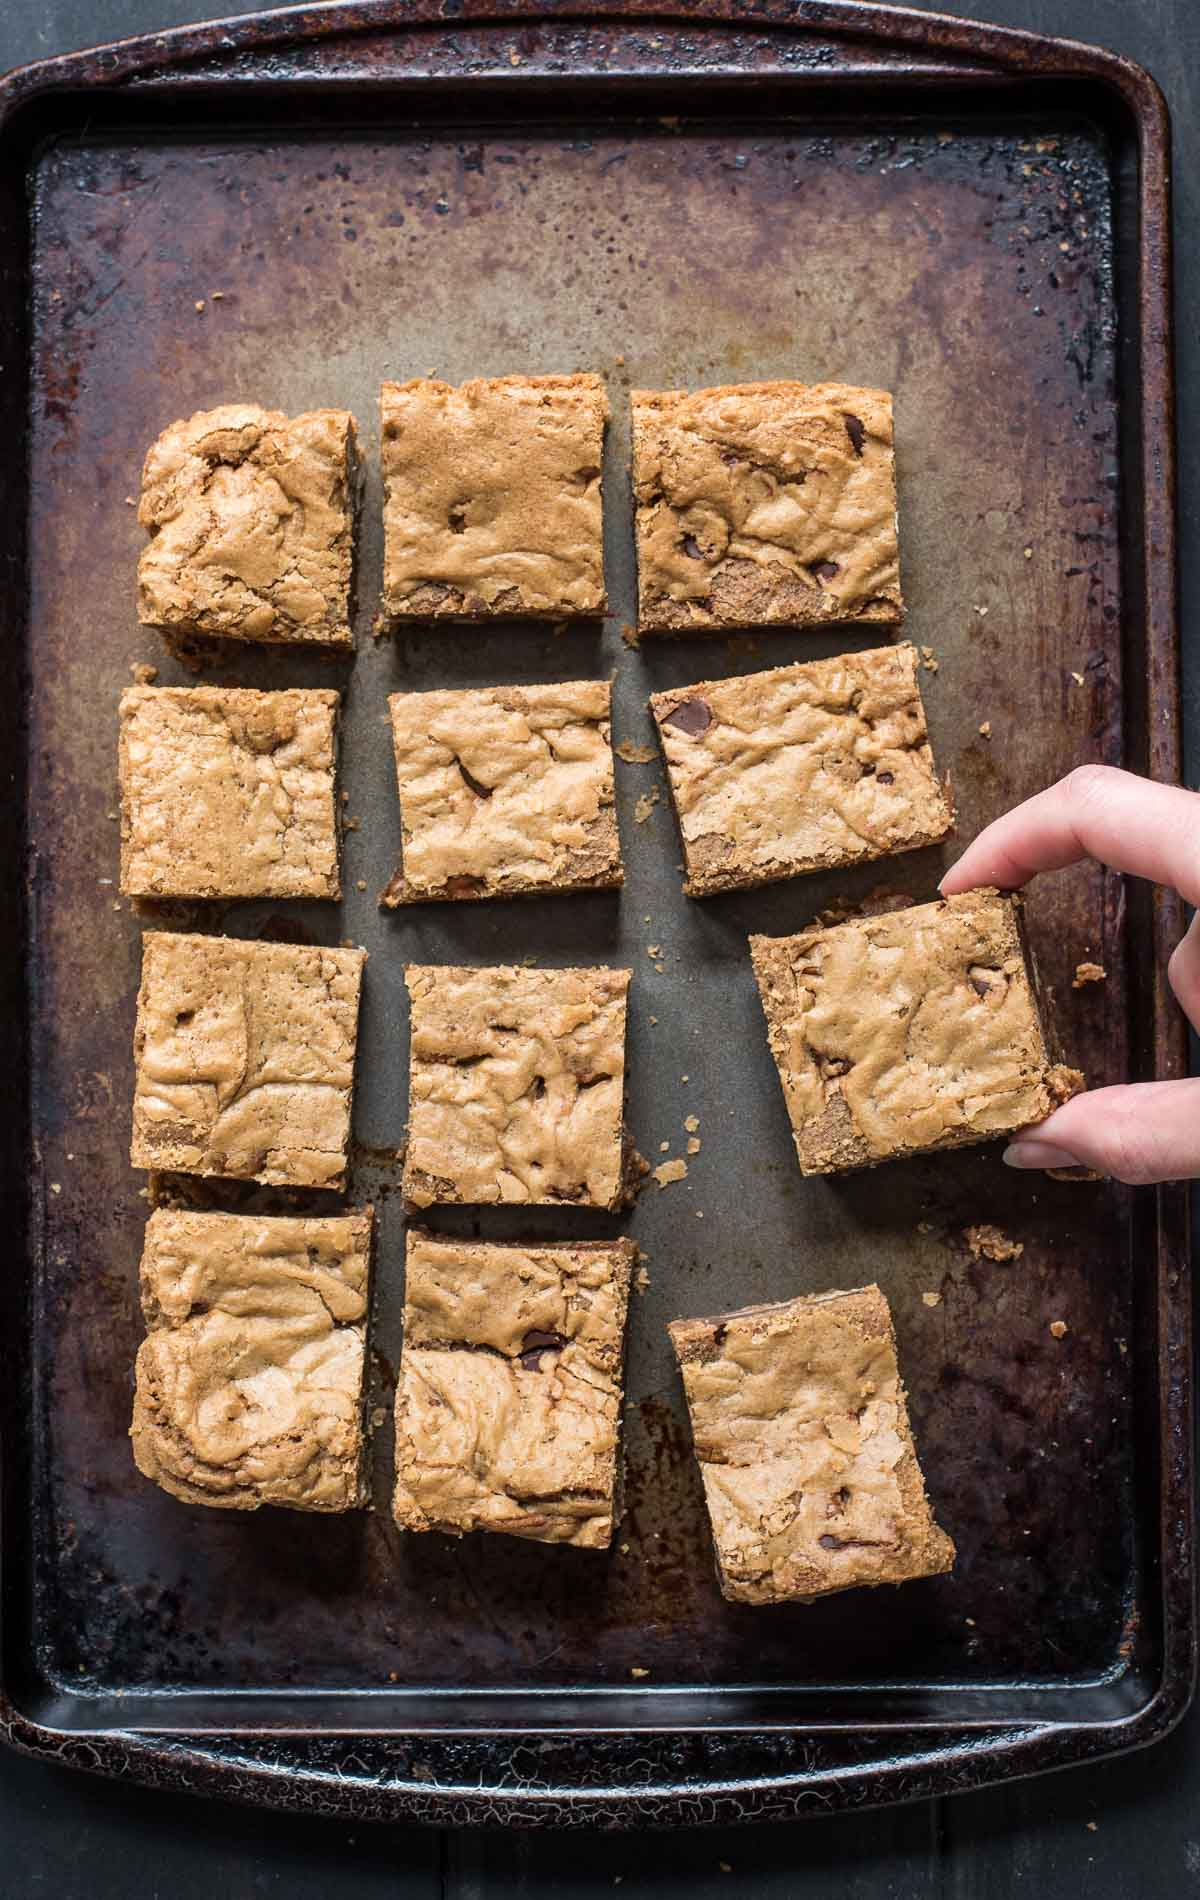 These Brown Butter Pecan Blondies are an irresistibly simple and sweet treat!